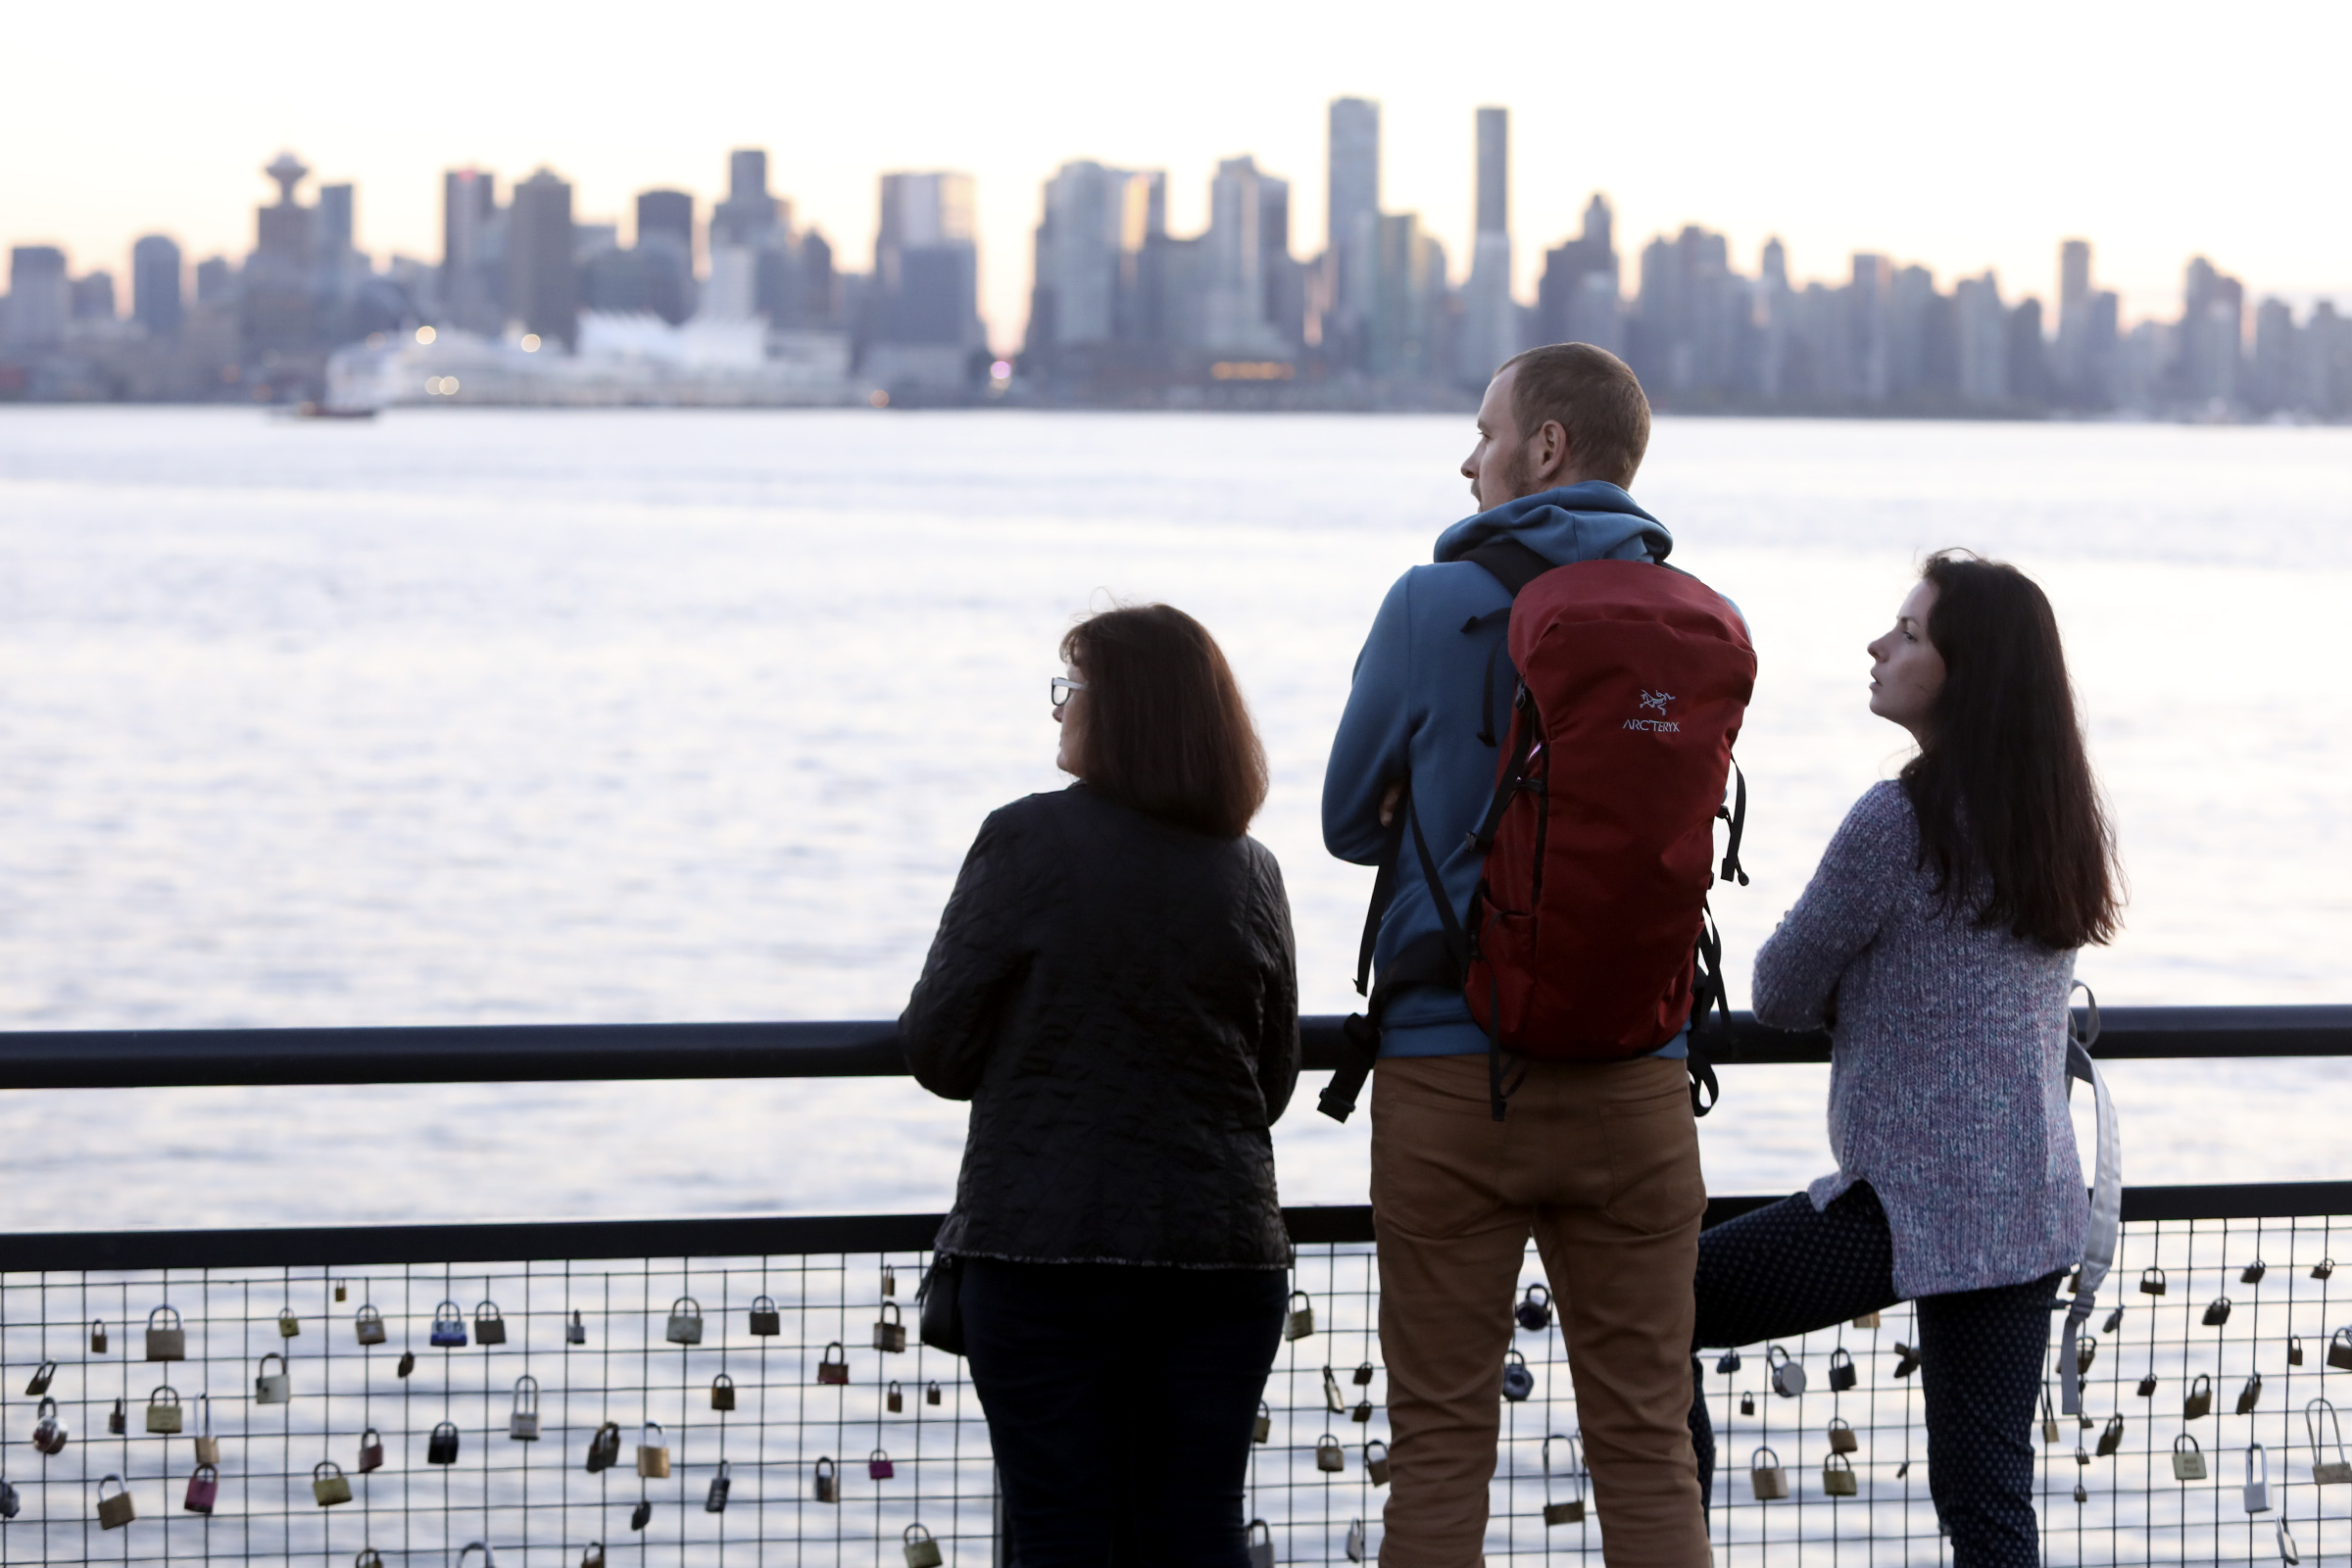 Olga Boiko, Pavel Boiko and Daria Boiko look out at the Vancouver skyline from Lonsdale Quay in North Vancouver, British Columbia, on Monday, Sept. 17, 2018.